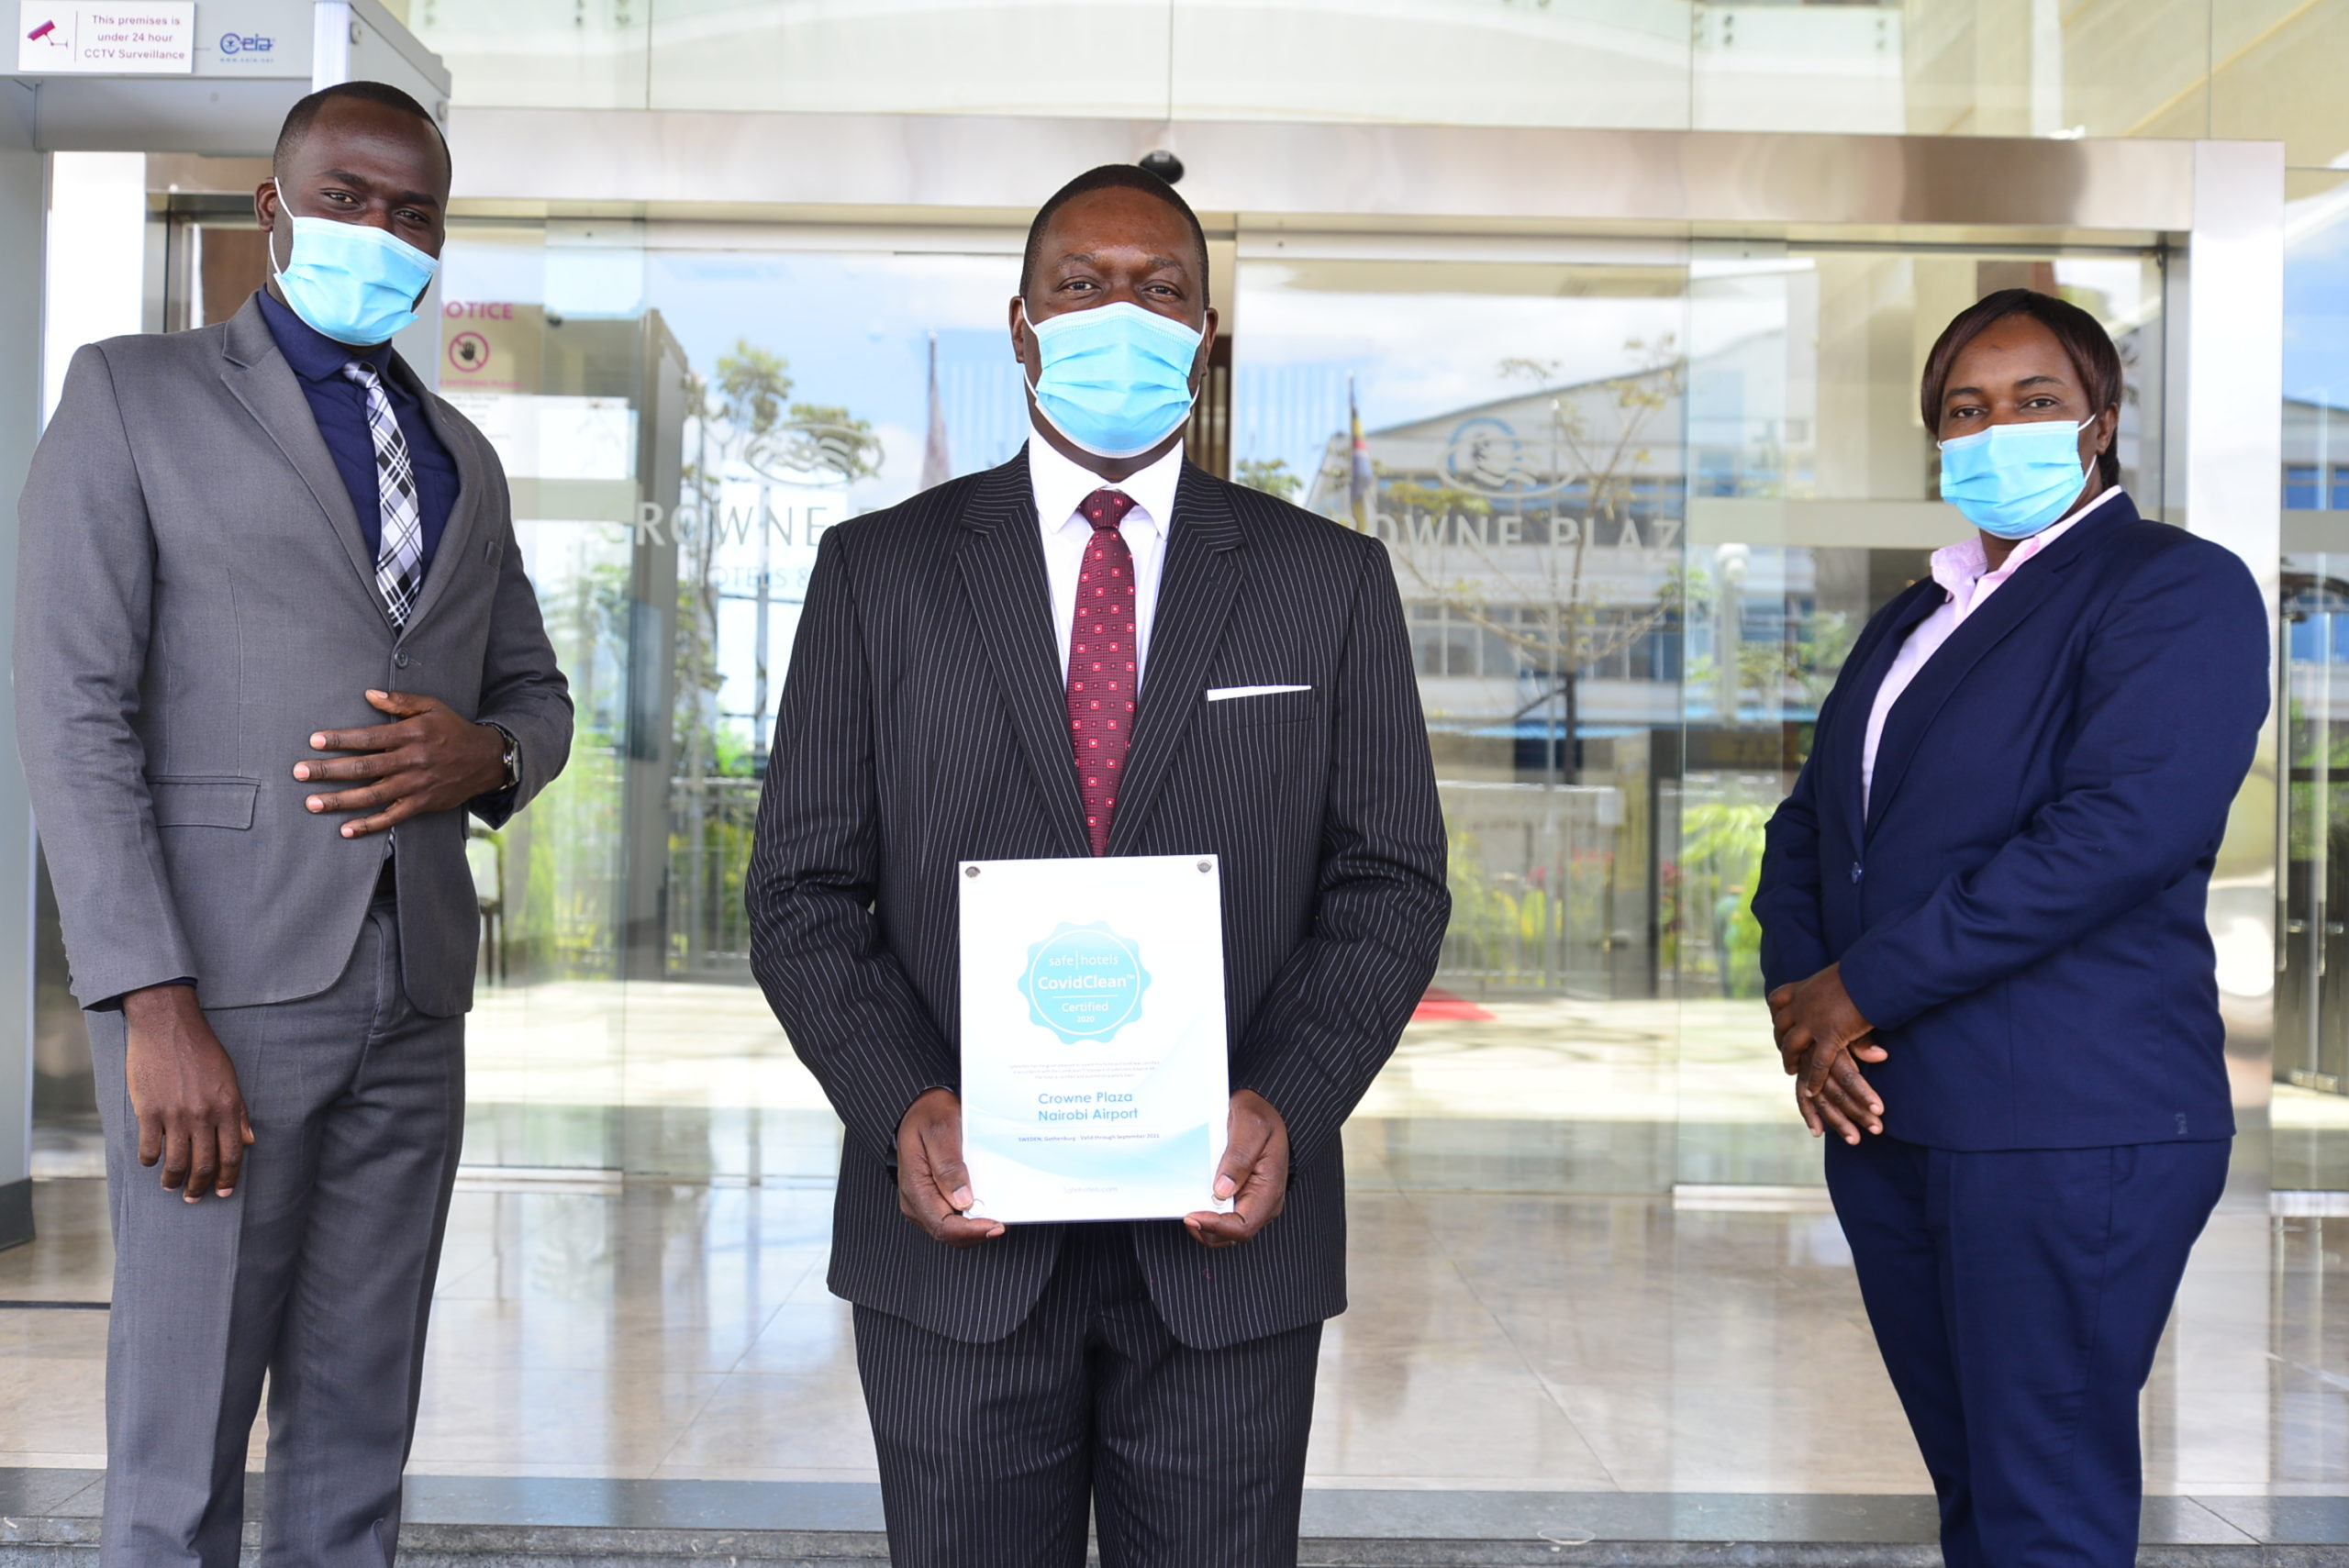 Crowne Plaza Nairobi Airport Obtains CovidClean Certification by Safehotels - Capital Business